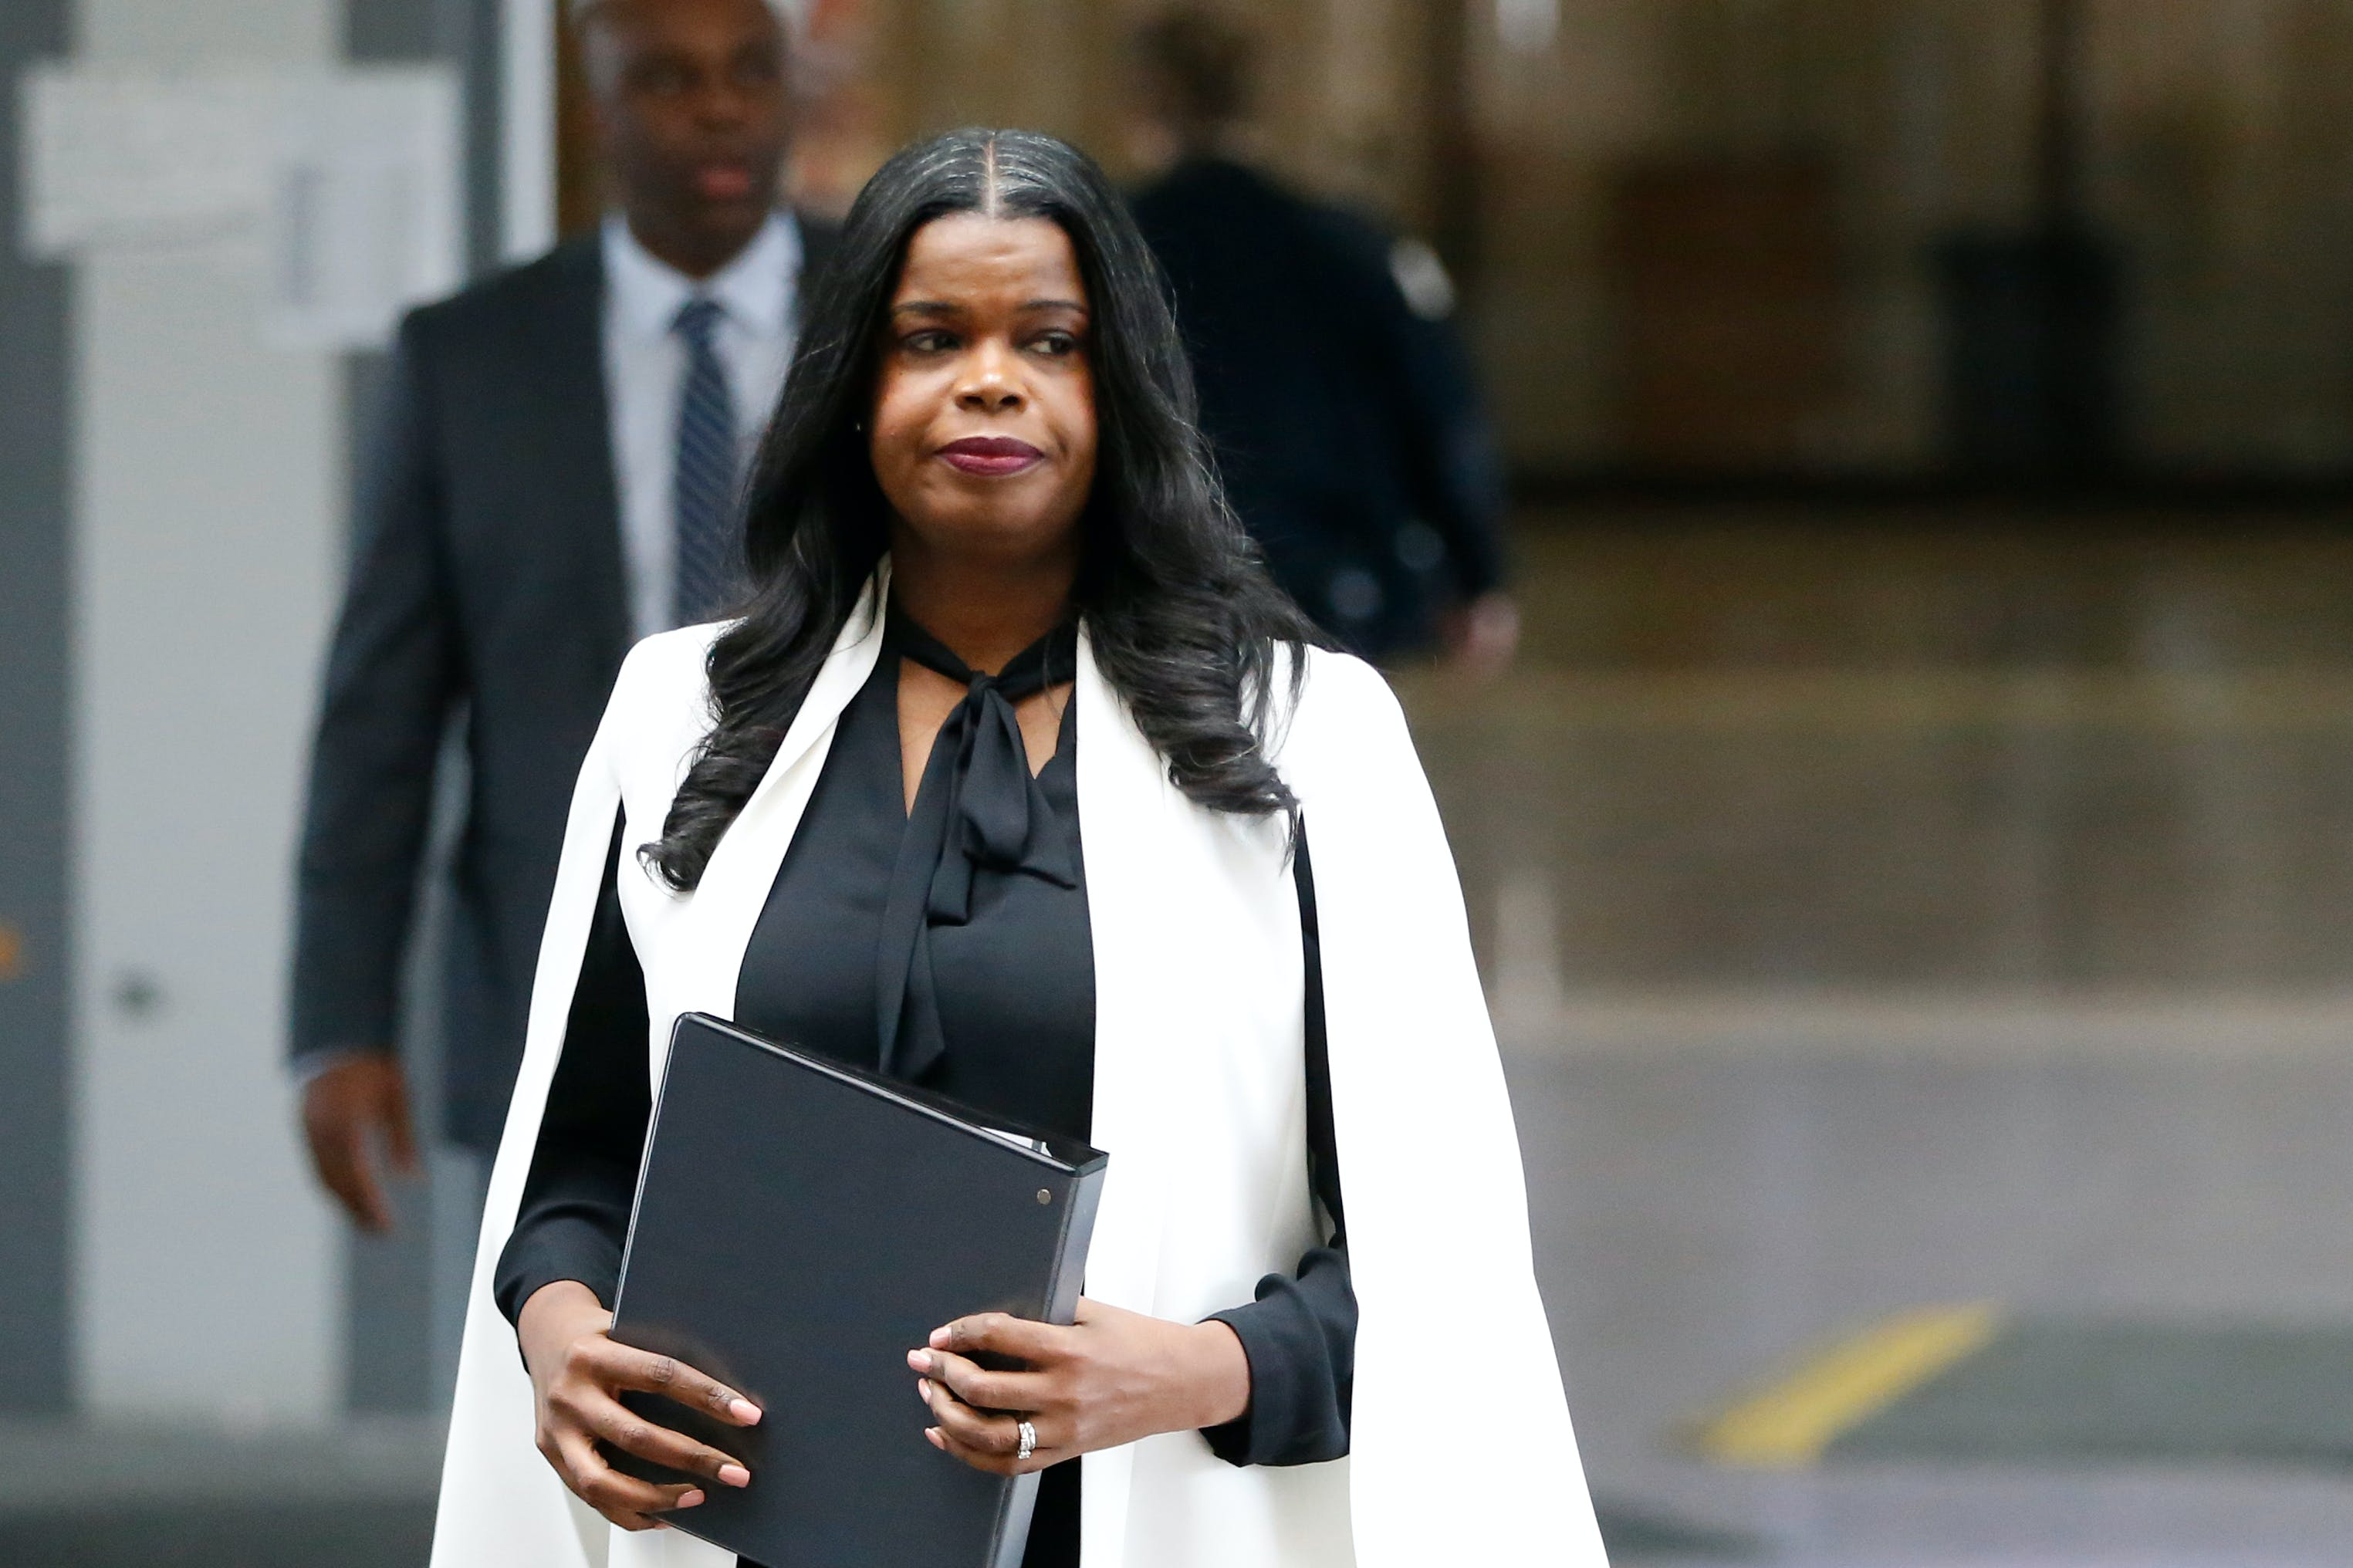 CHICAGO, IL - FEBRUARY 23: Cook County State Attorney Kim Foxx arrives to speak with reporters and details the charges against R. Kelly's first appearance at the Leighton Criminal Court on February 23, 2019 in Chicago, Illinois. (Photo by Nuccio DiNuzzo / Getty Images)